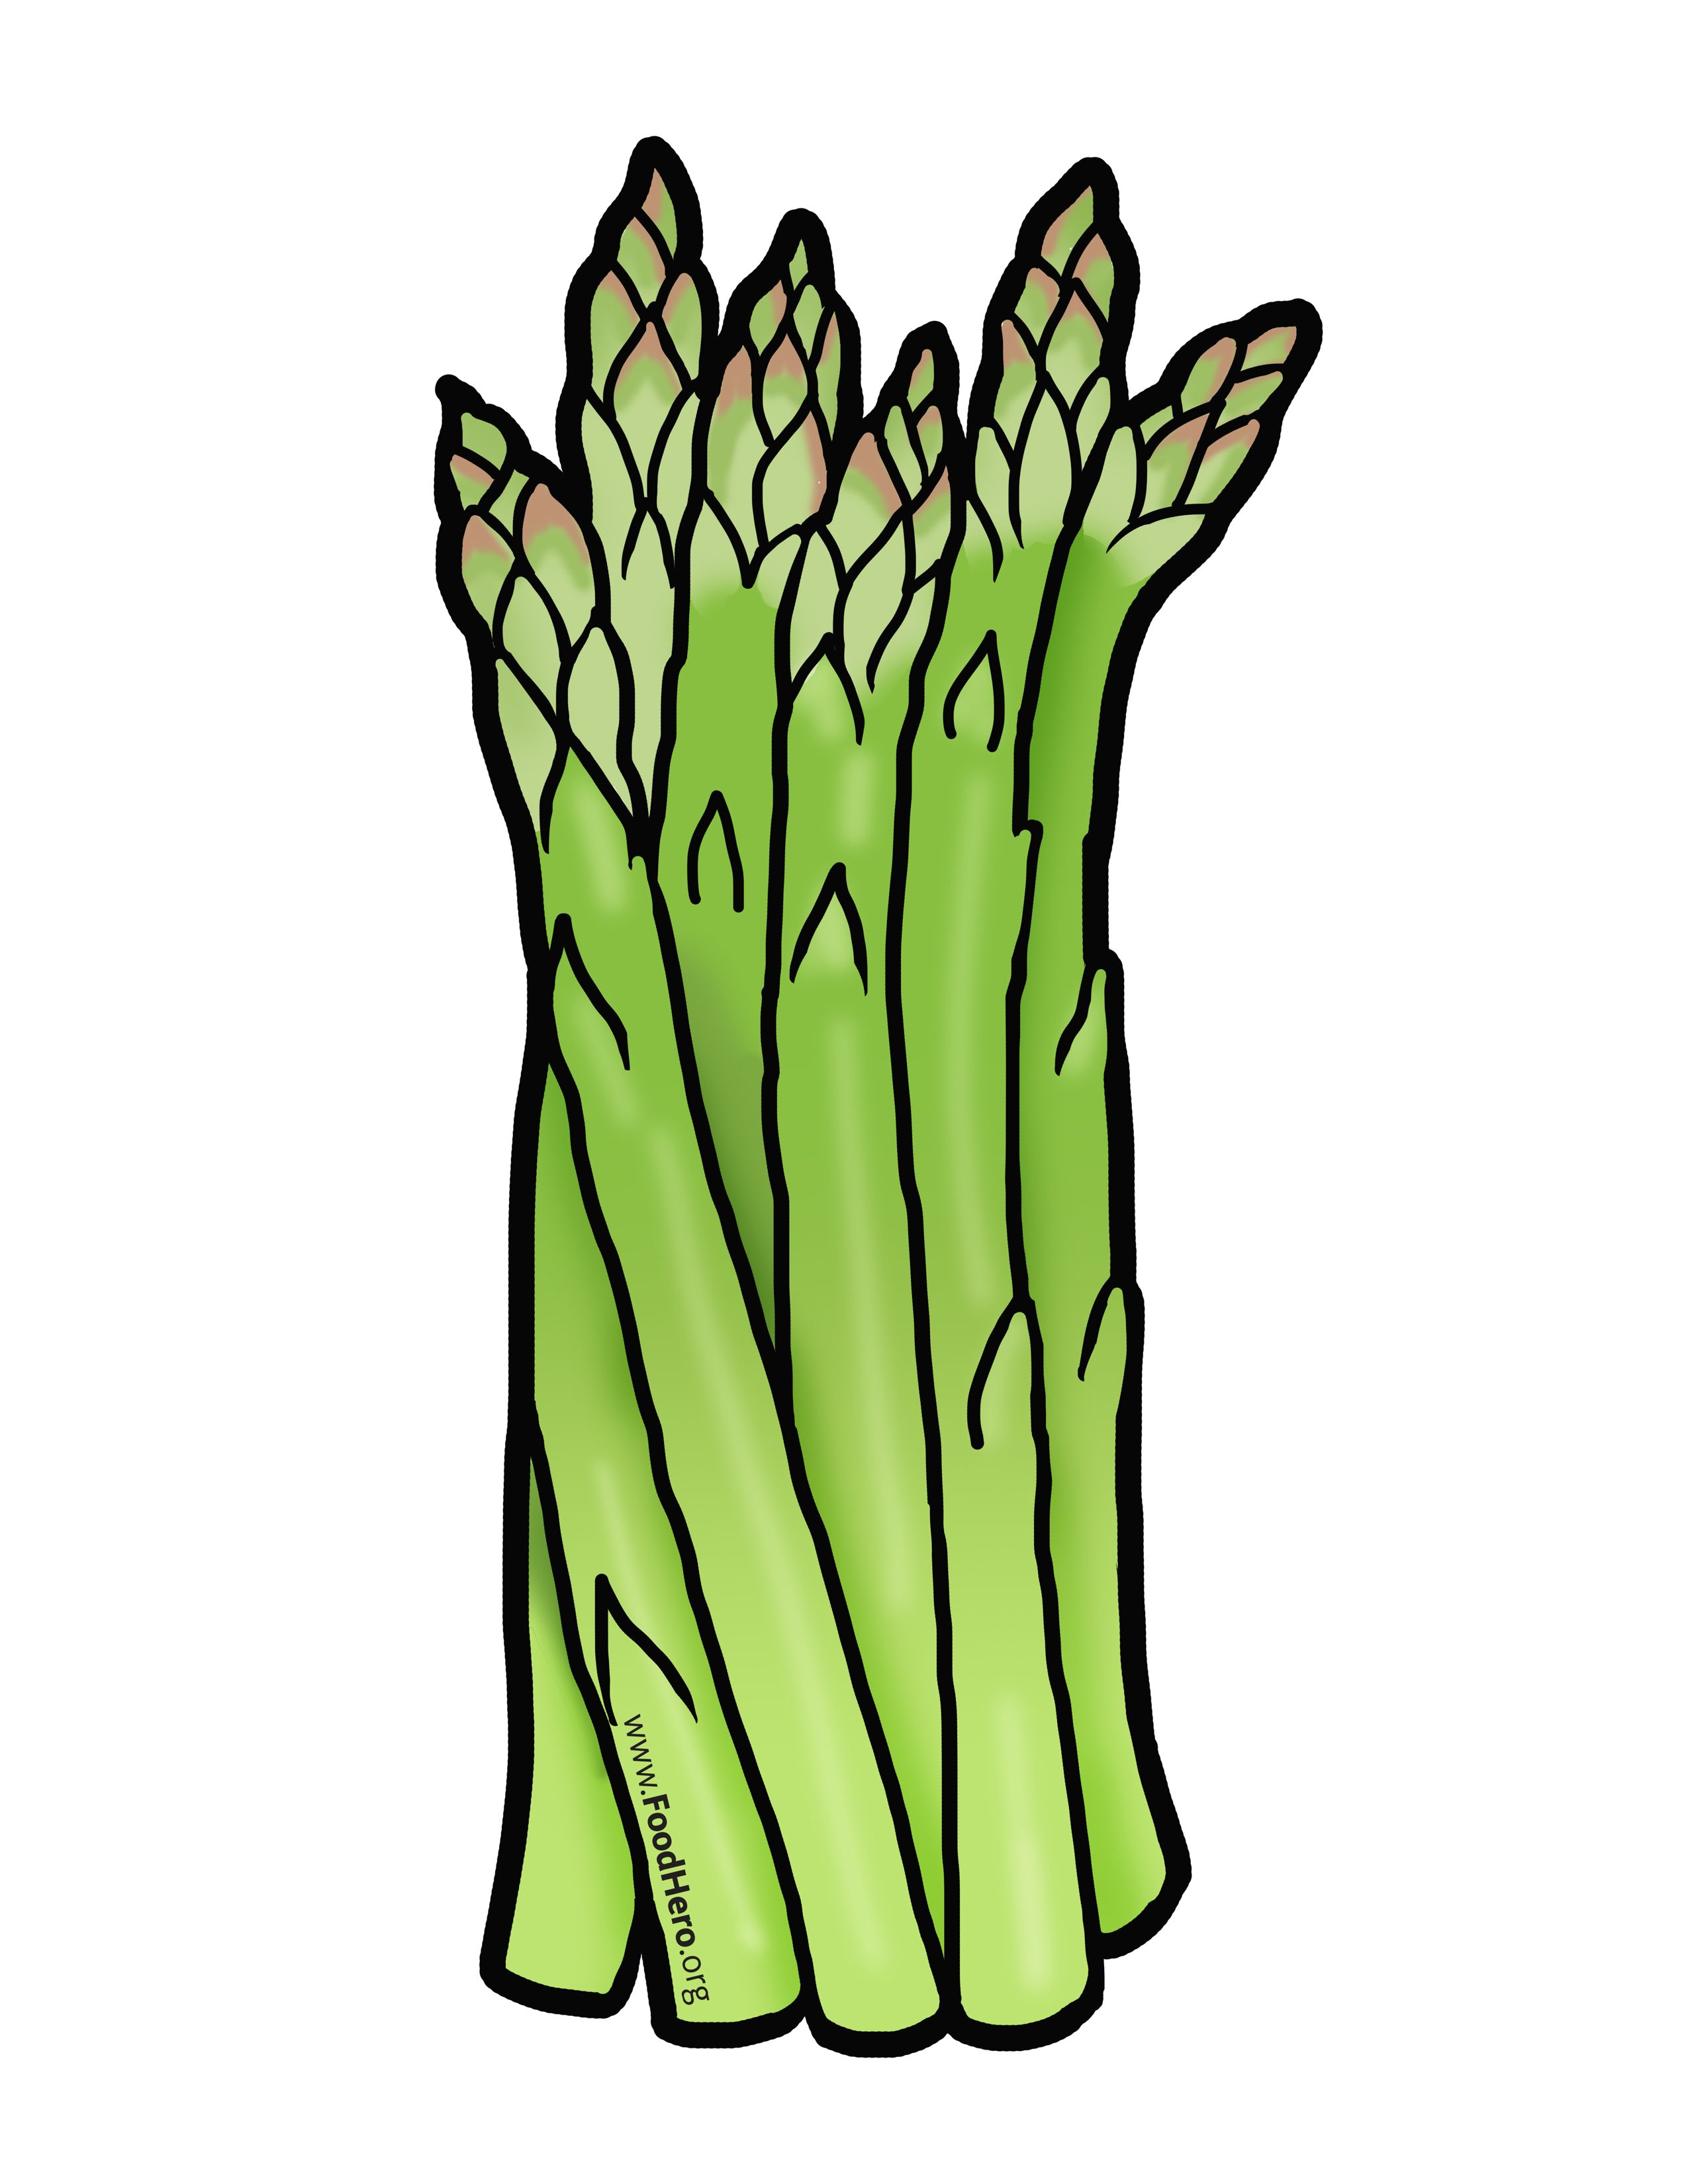 Clipart asapagass jpg black and white stock Asparagus illustration. #foodhero #bullentinboards #artwork ... jpg black and white stock